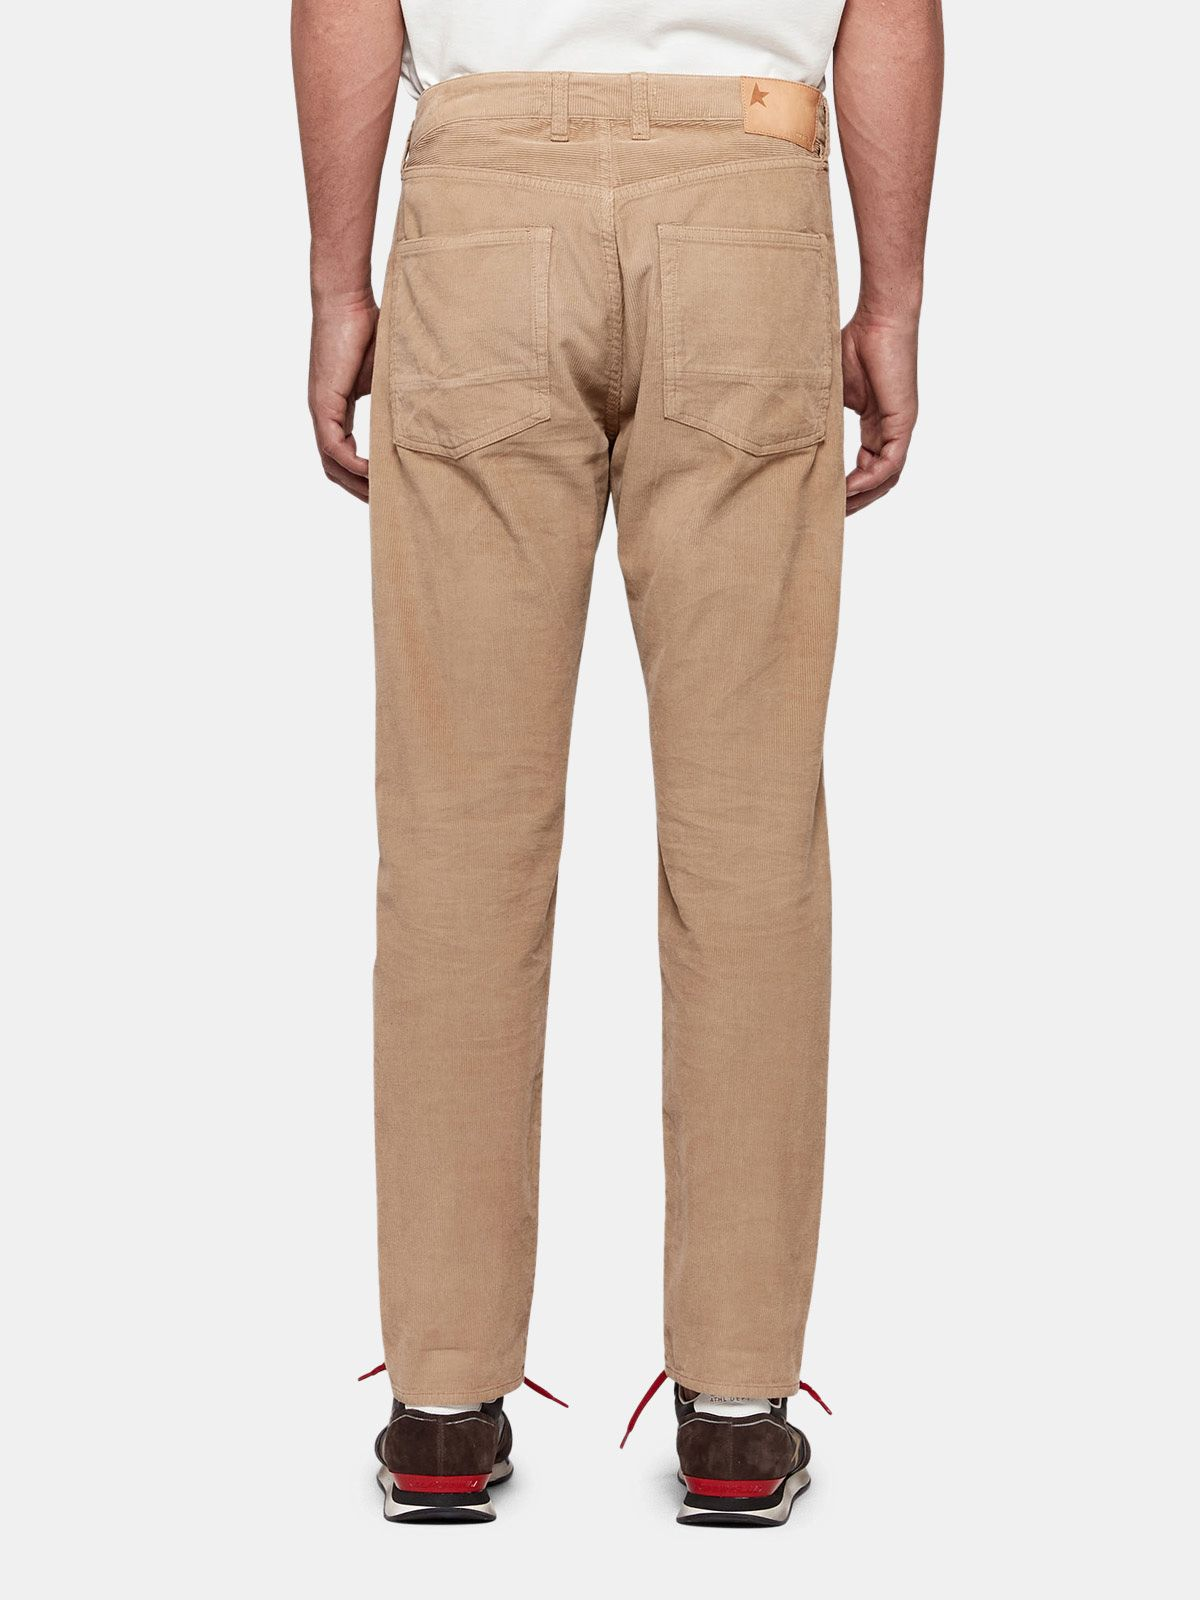 Golden Goose - Up five pocket trousers in corduroy velvet with a relaxed fit in